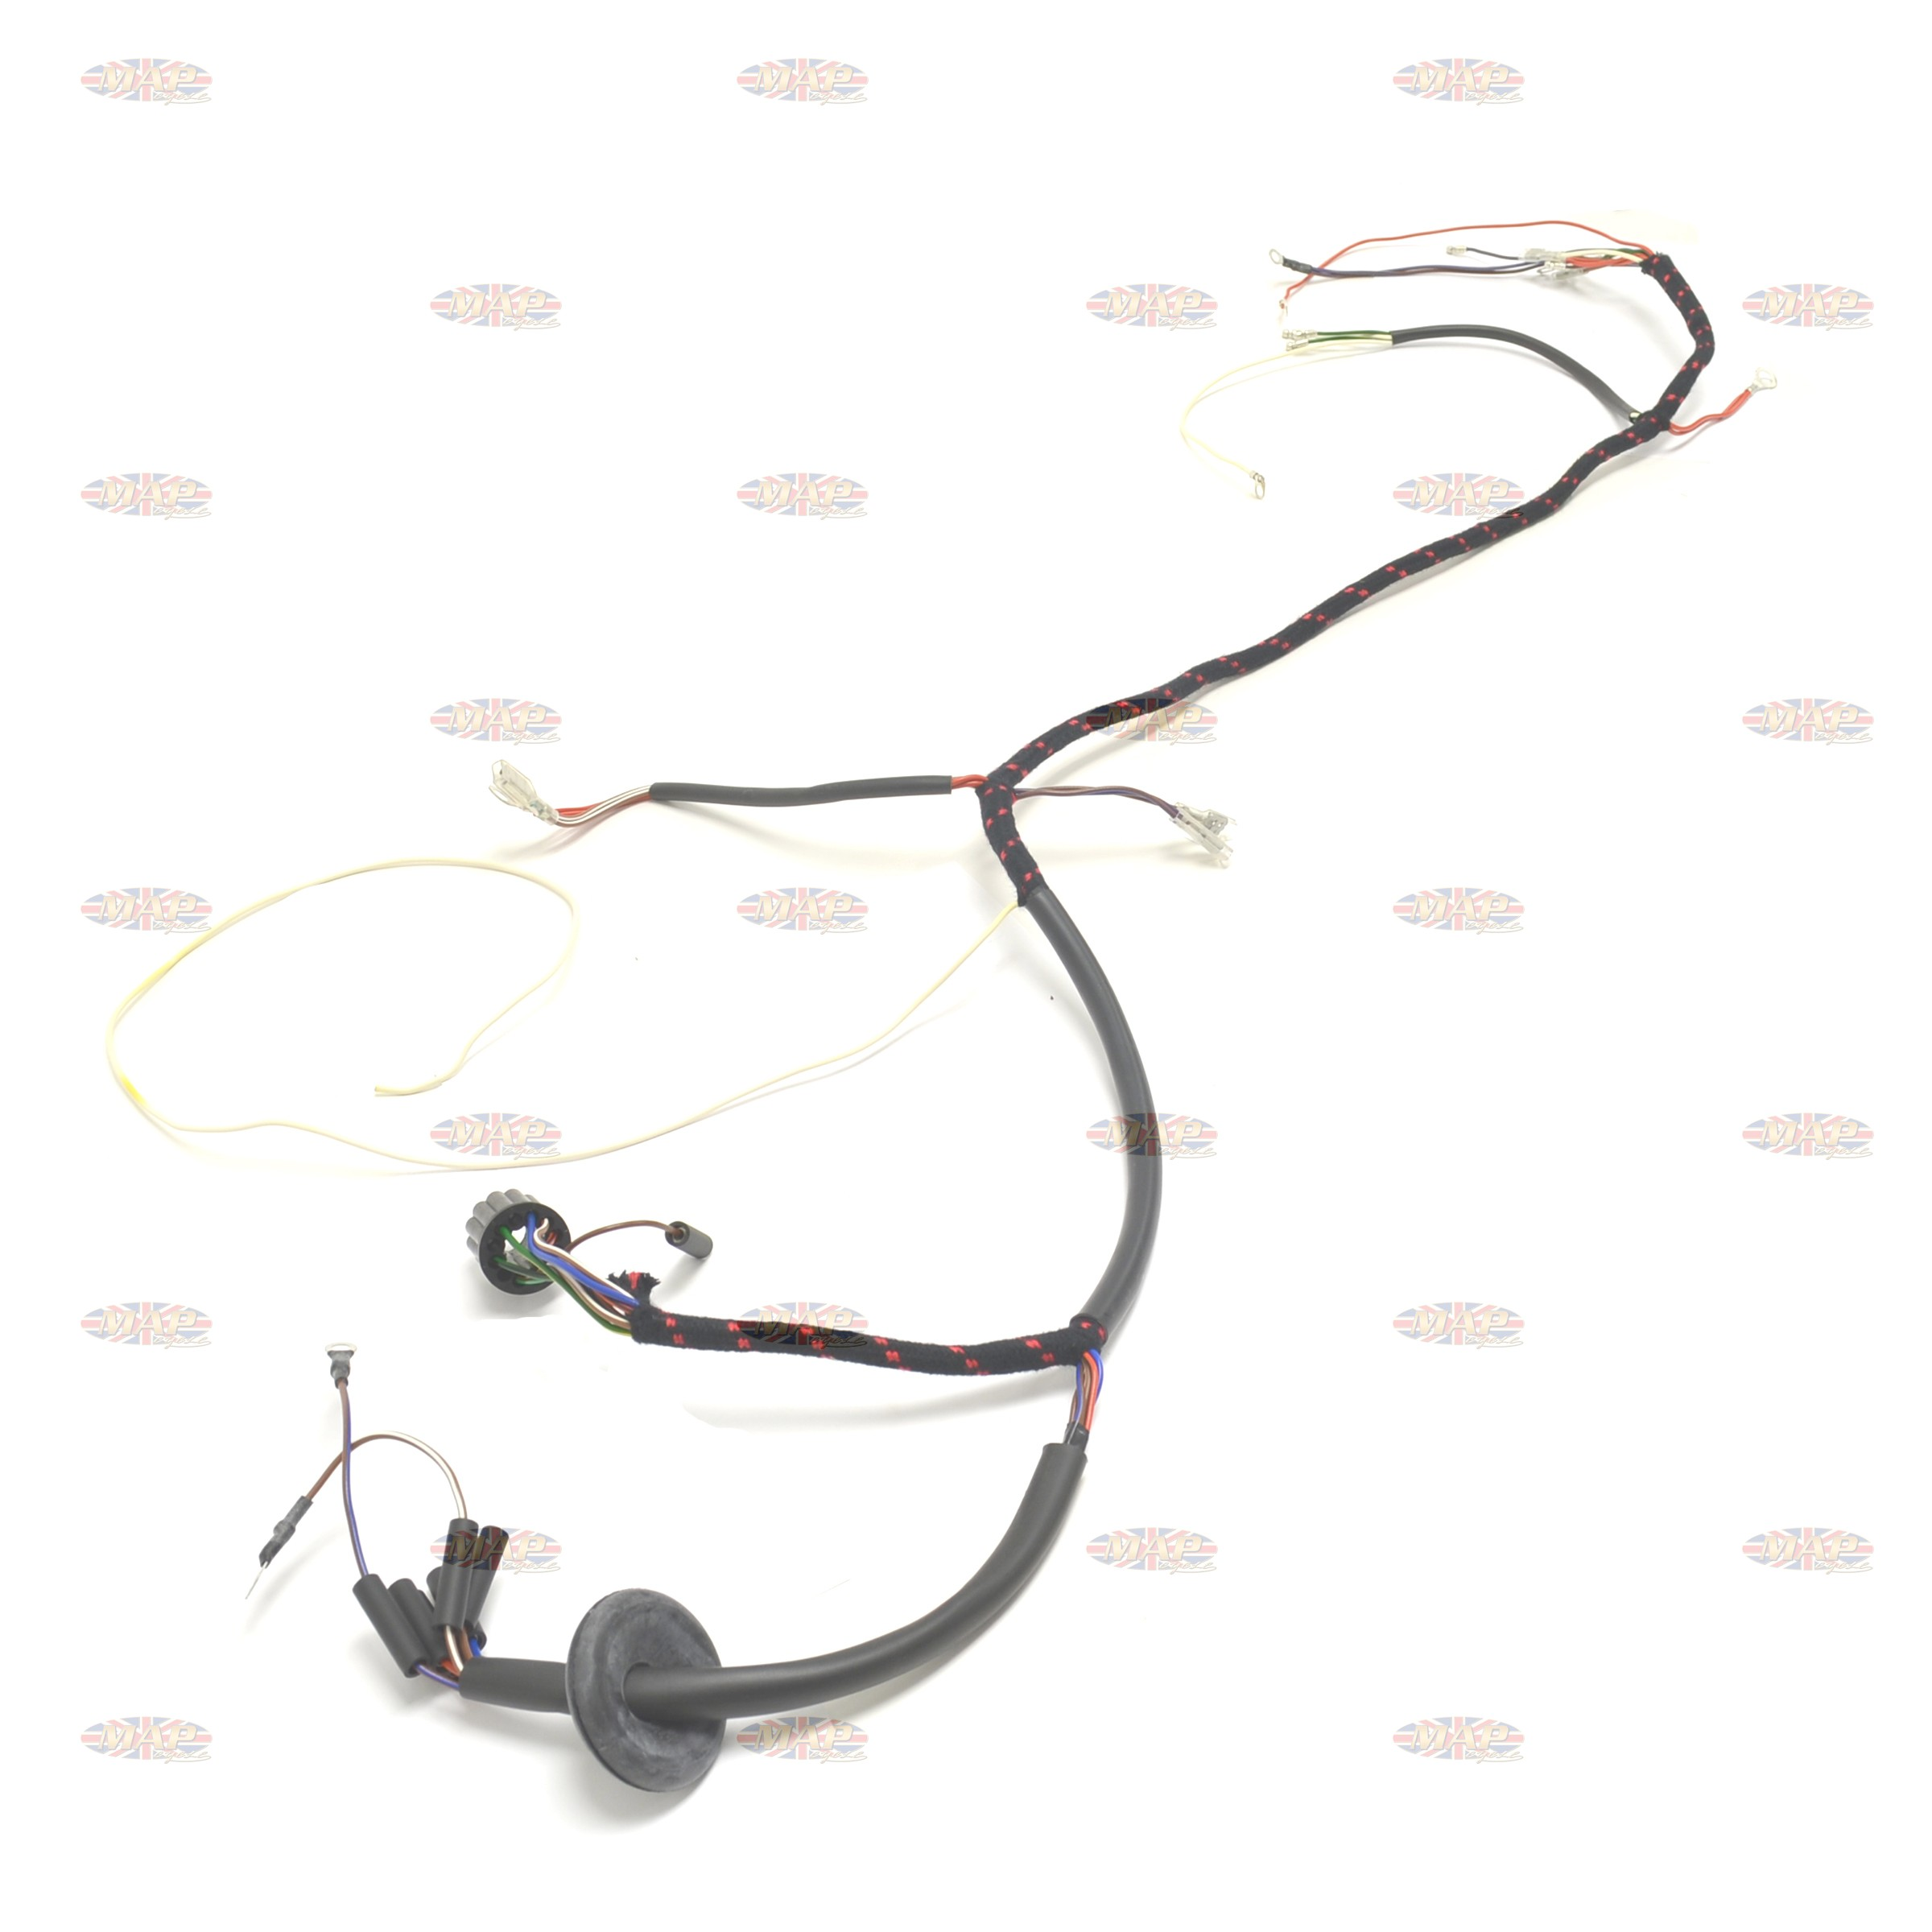 Norton 1964-67 650SS 750 Atlas UK-Made 12 Volt Wiring Harness